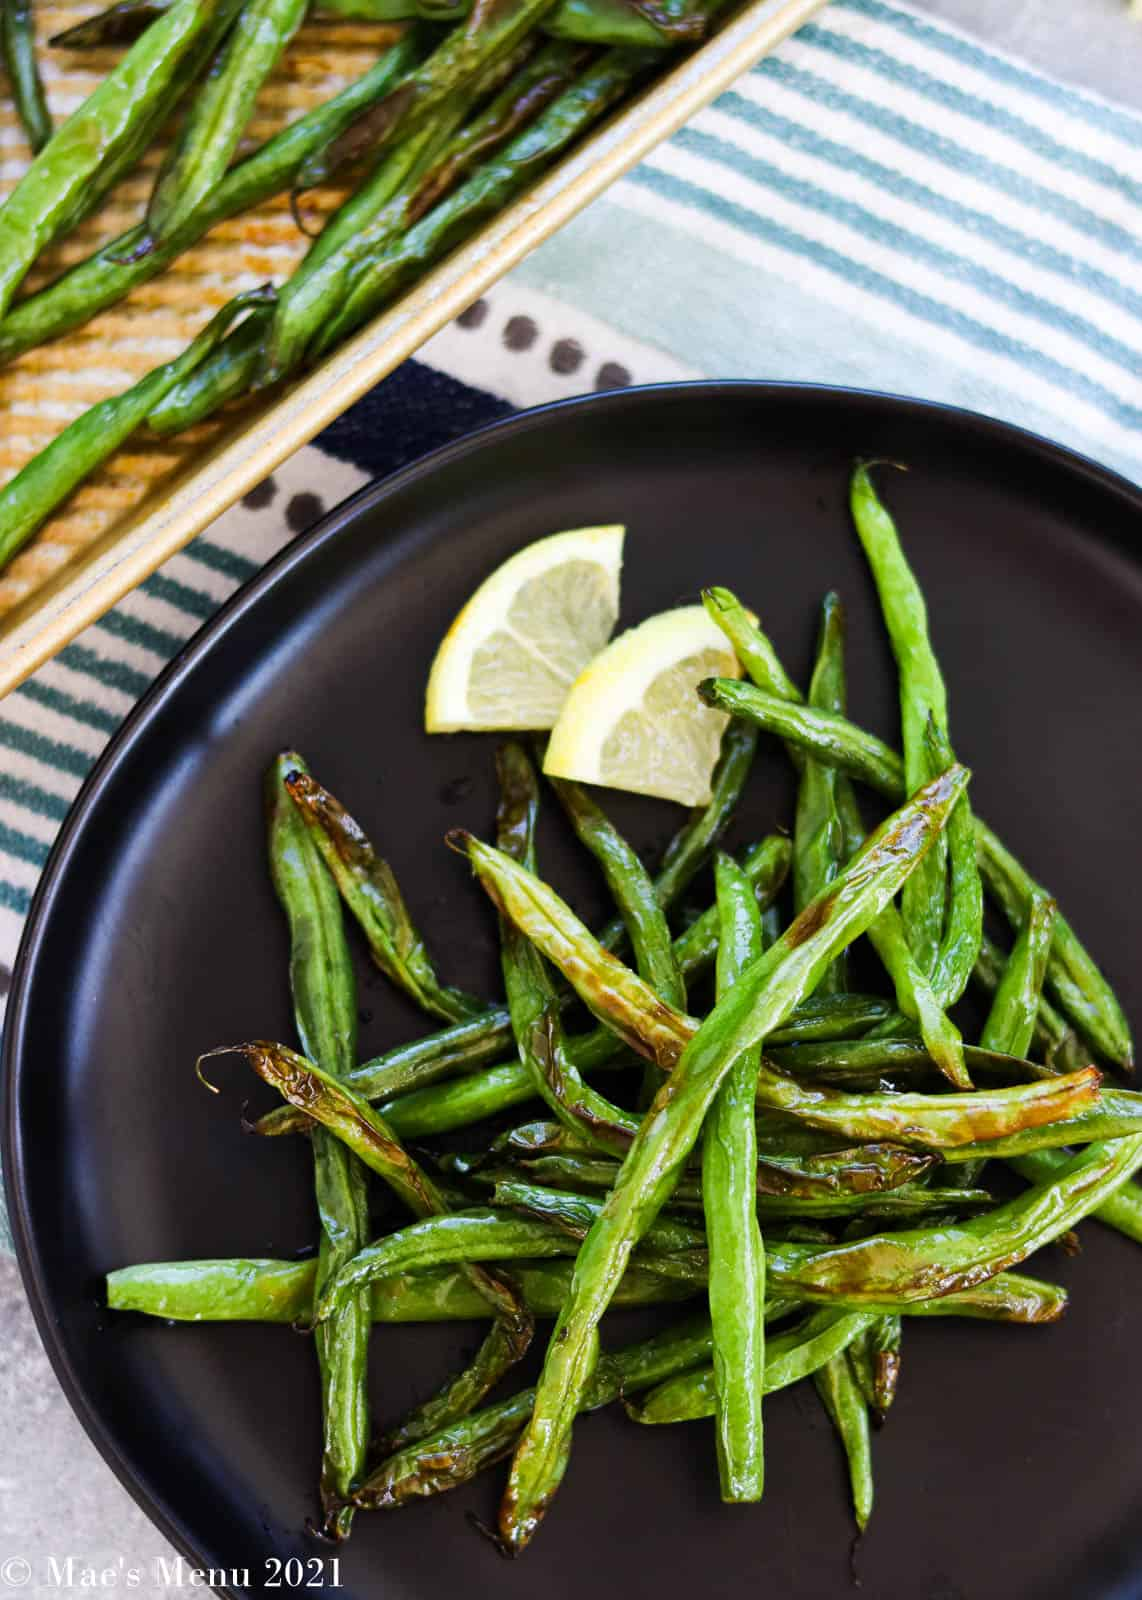 An overhead shot of a plate of air fryer green beans next to a sheet pan of the beans